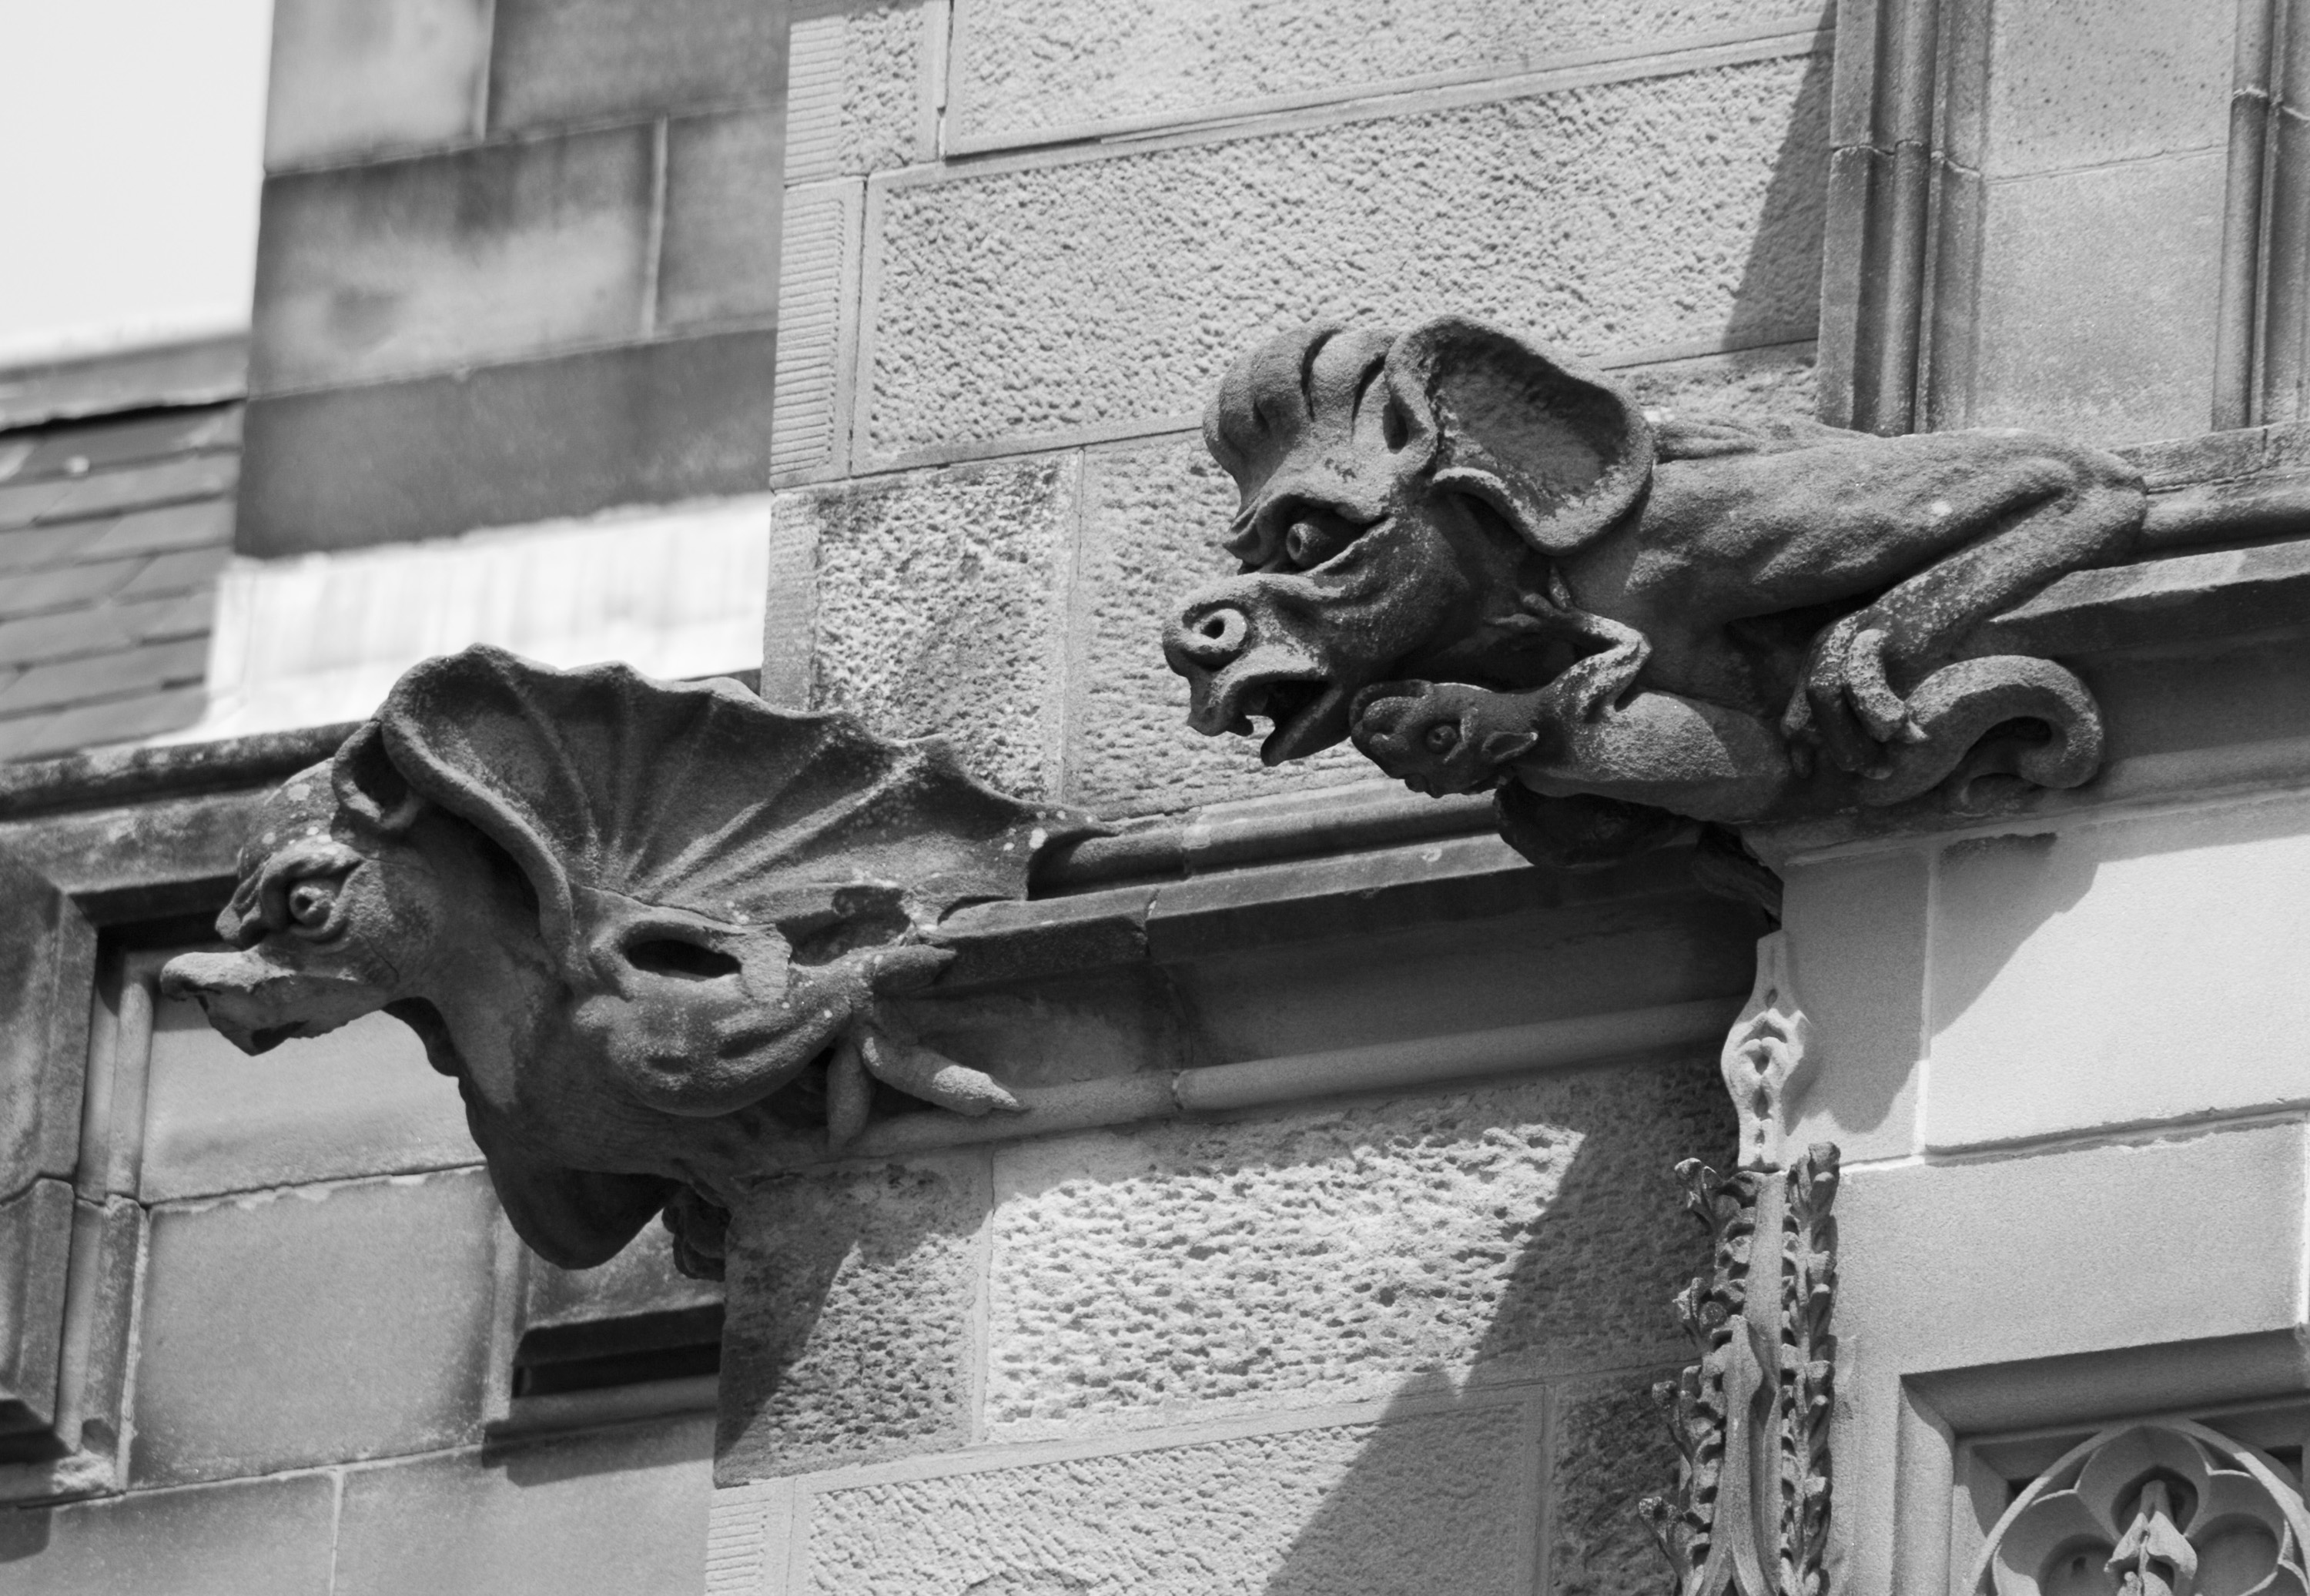 grotesque stone chimera decorations in black and white